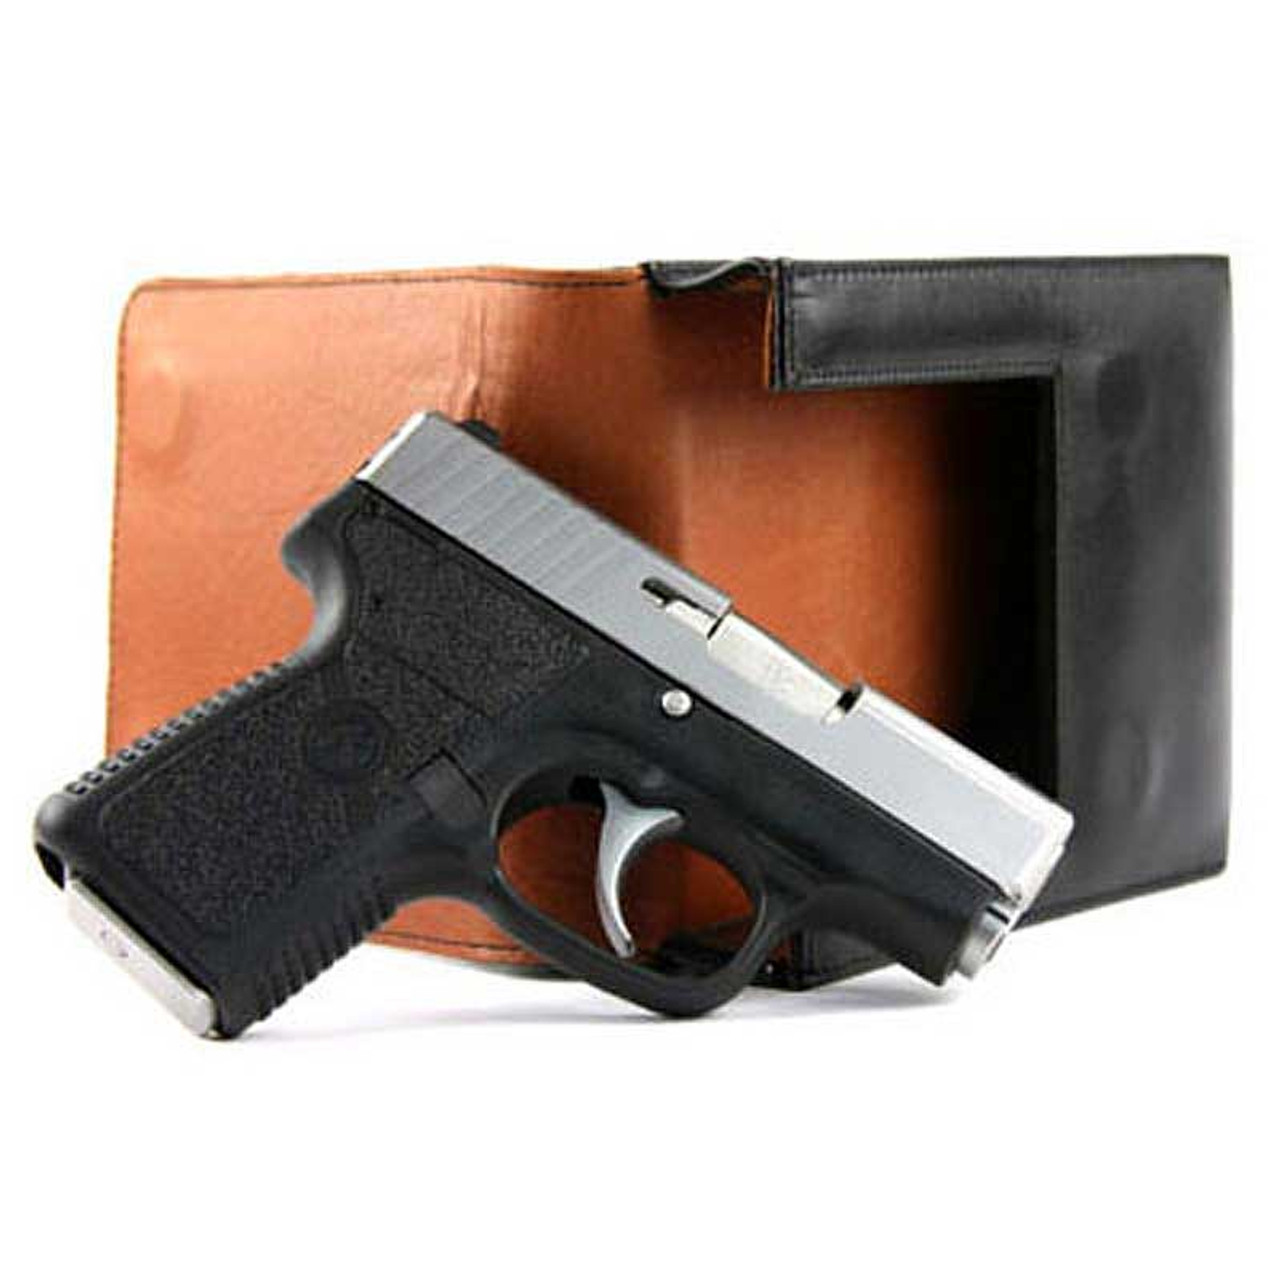 Kahr P380 Sneaky Pete Holster (Belt Clip)